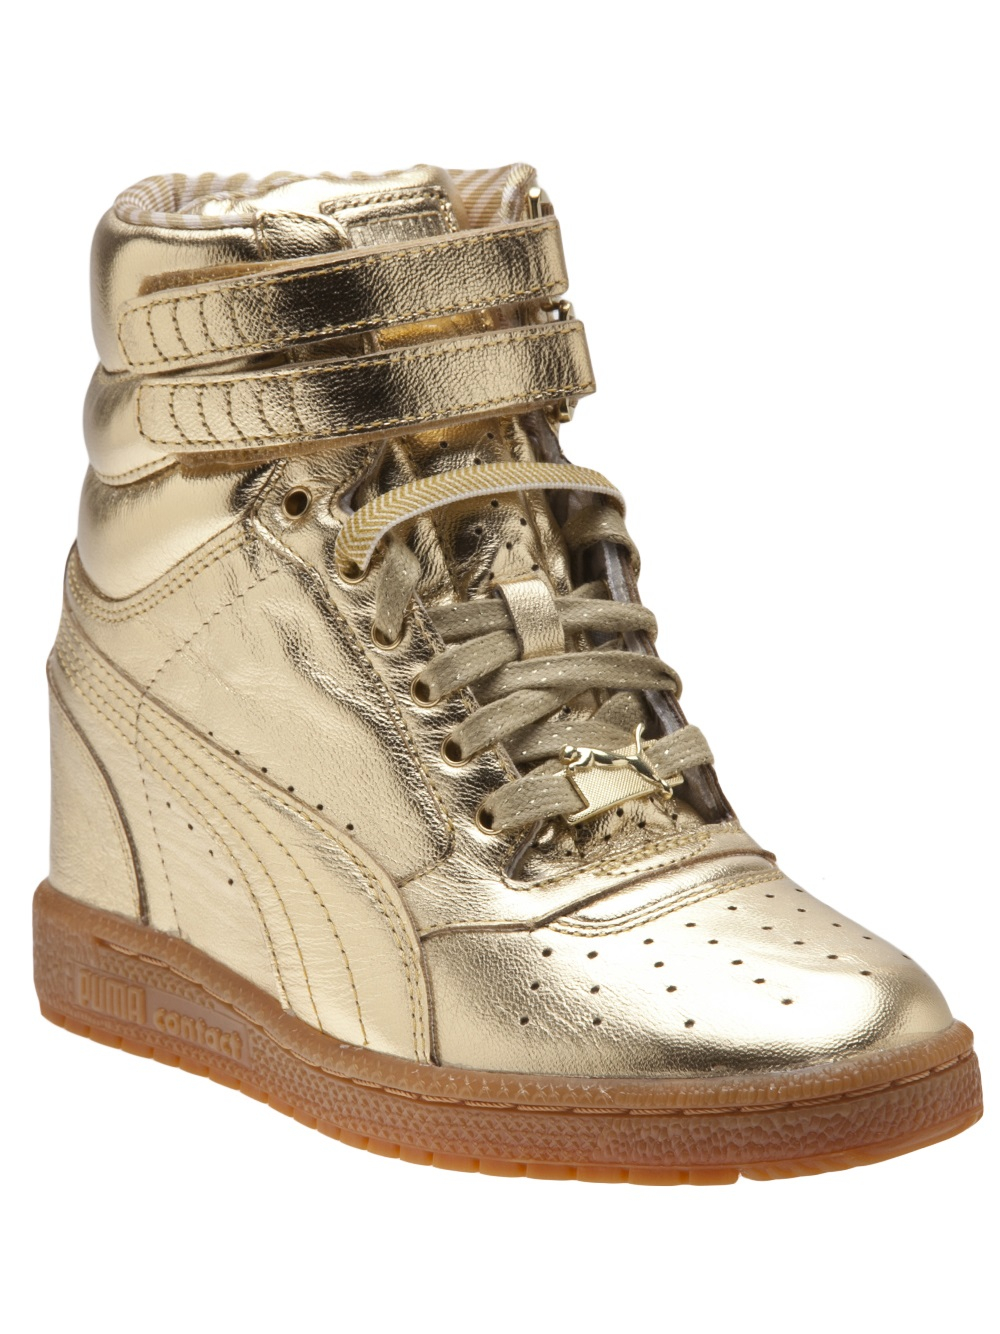 30ab9c7e955 Gallery. Previously sold at  Farfetch · Women s Wedge Sneakers ...